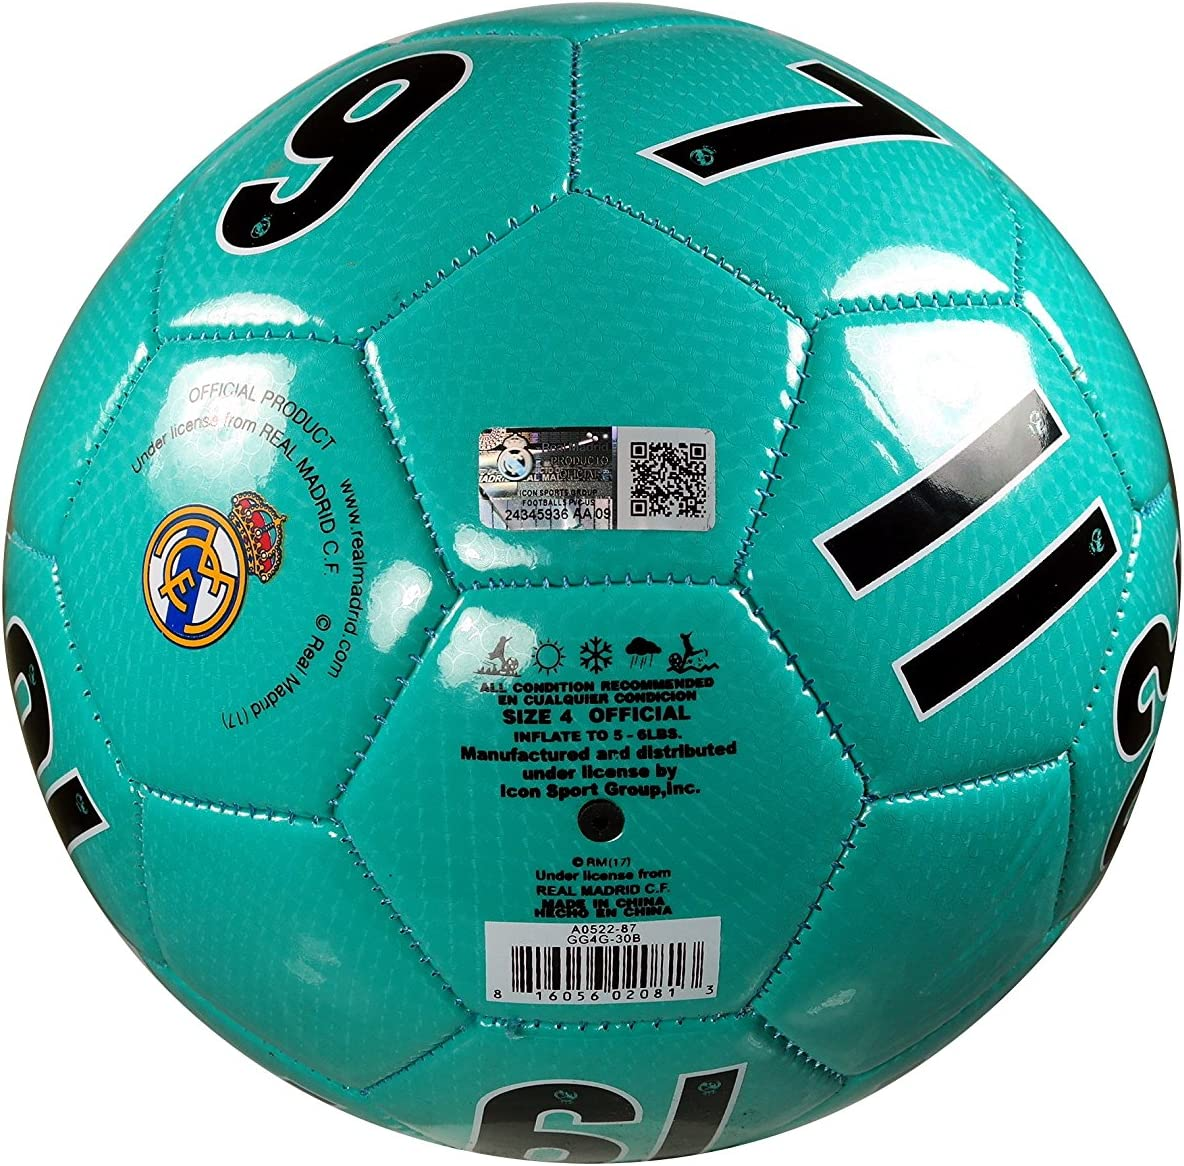 Real Madrid C.F Authentic Official Licensed Soccer Ball Size 5-004